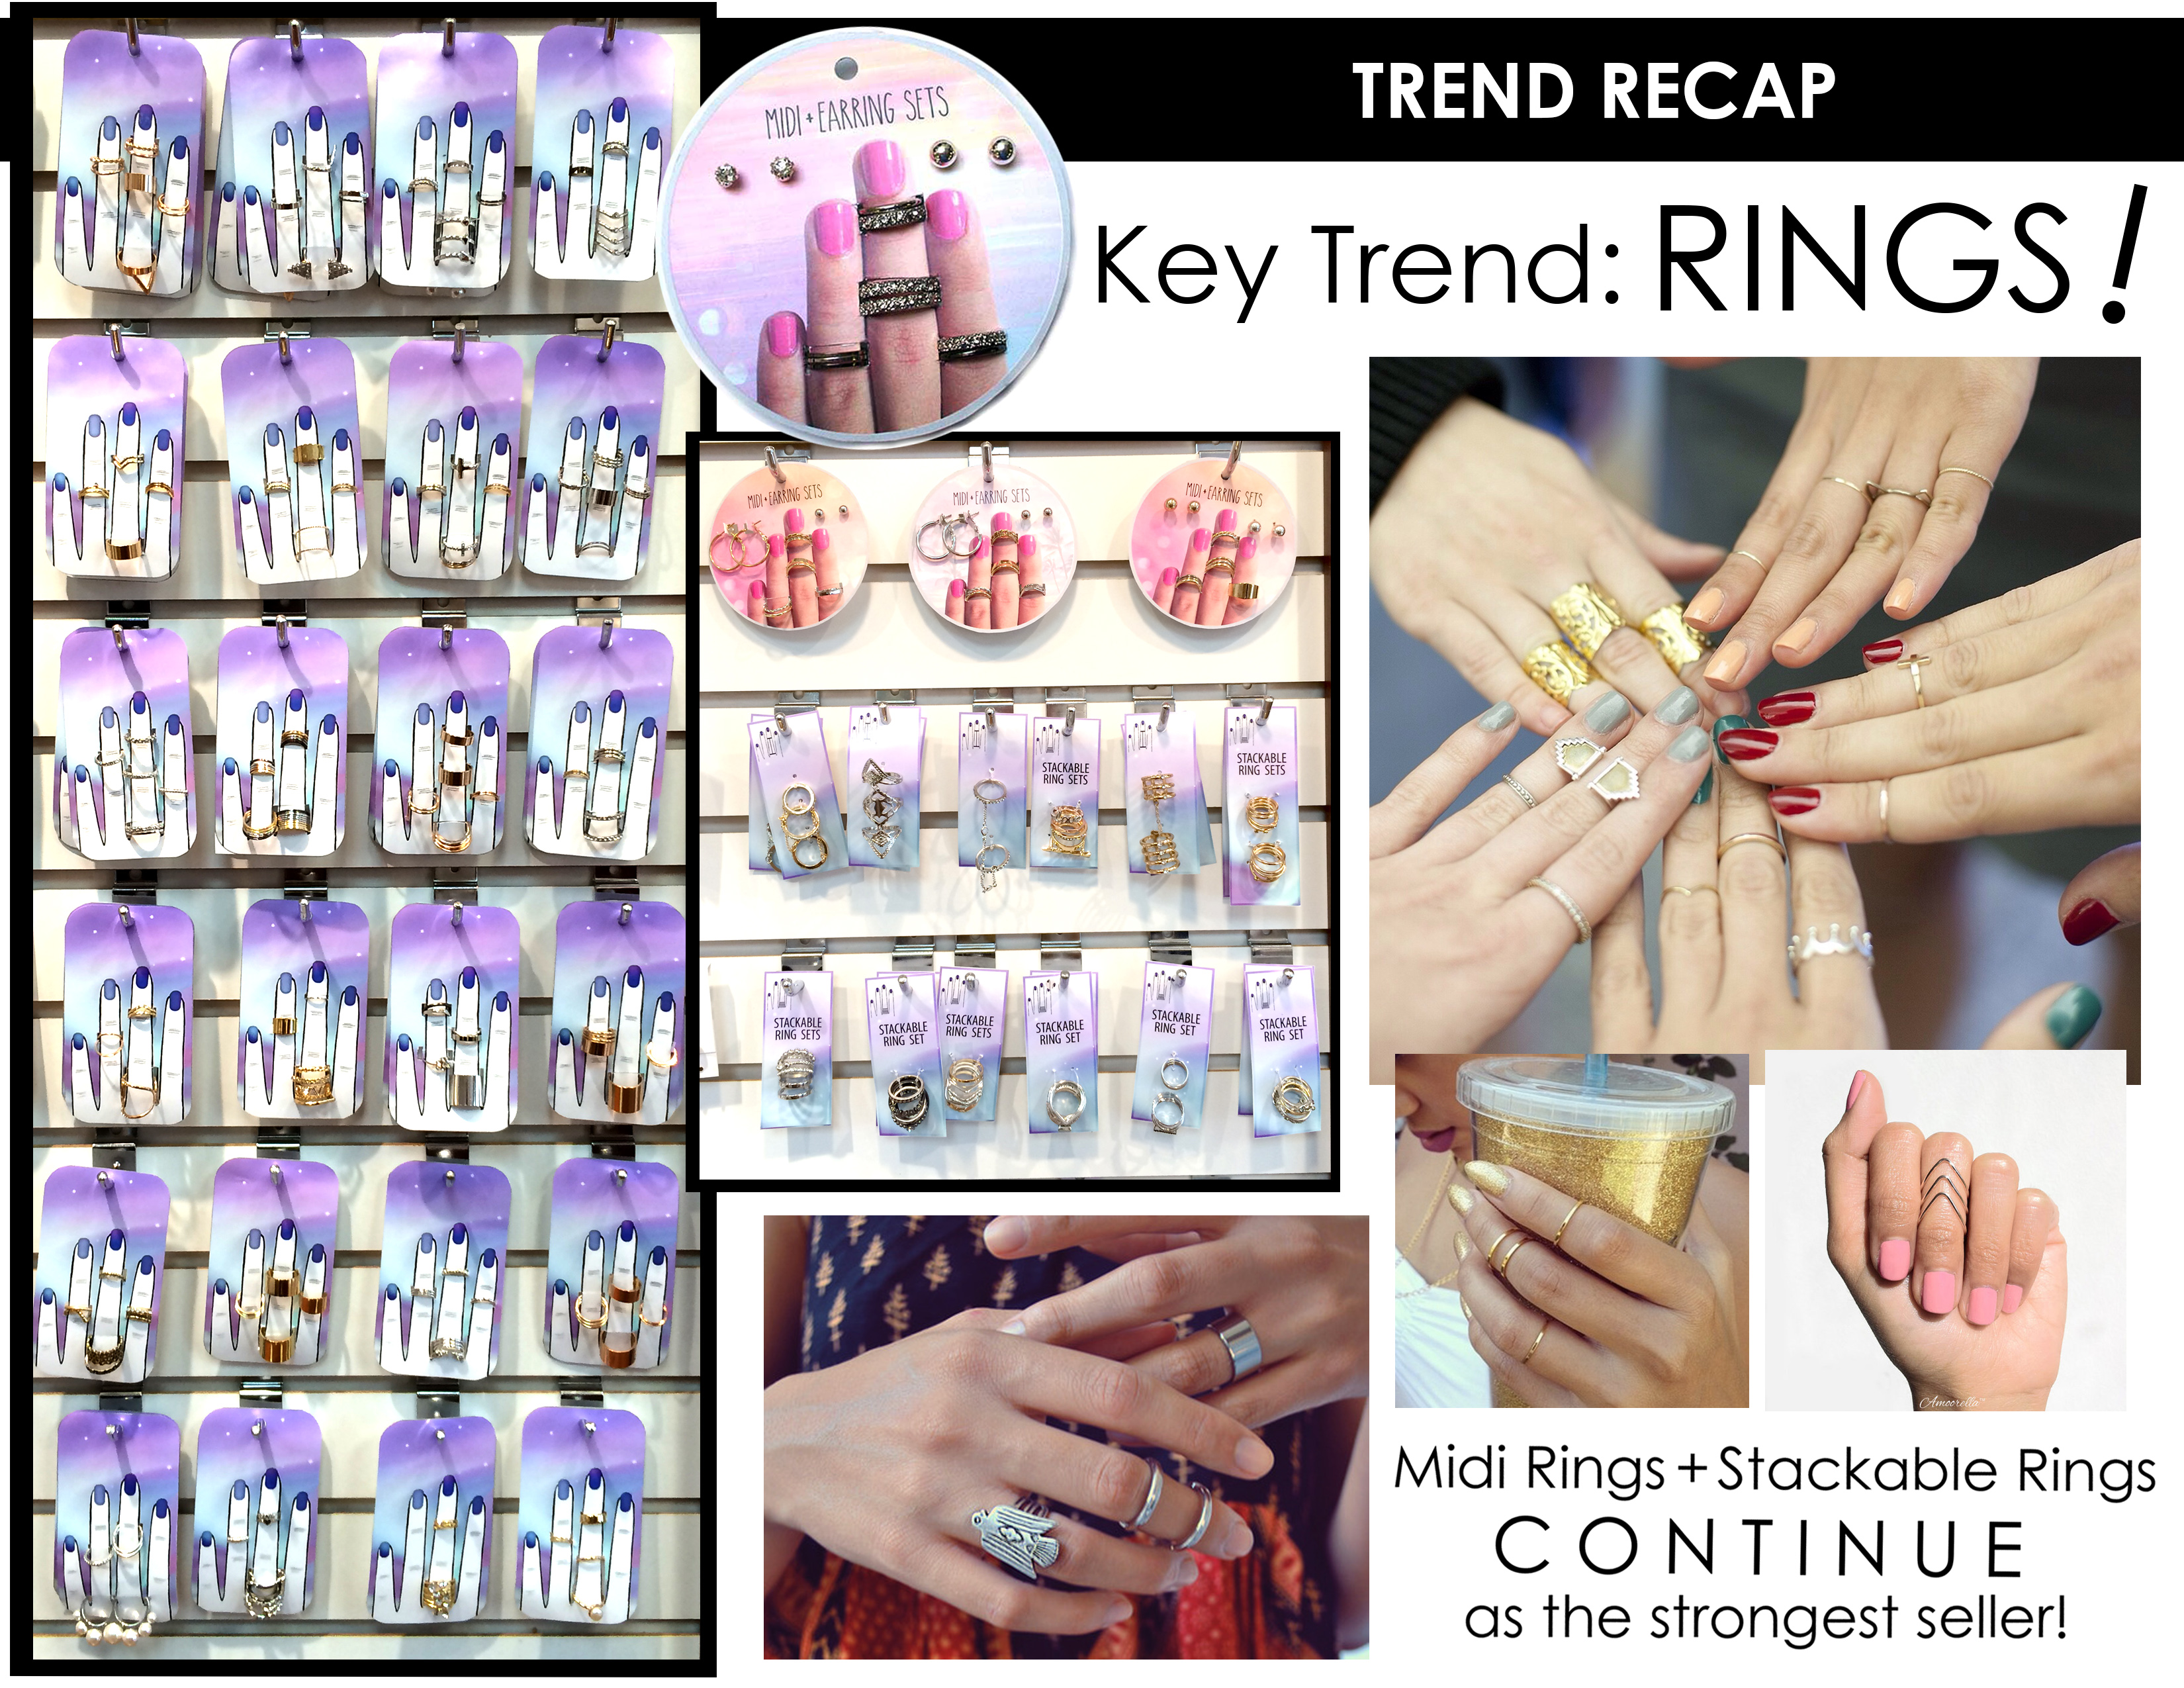 Showroom Trend Recap for Rings